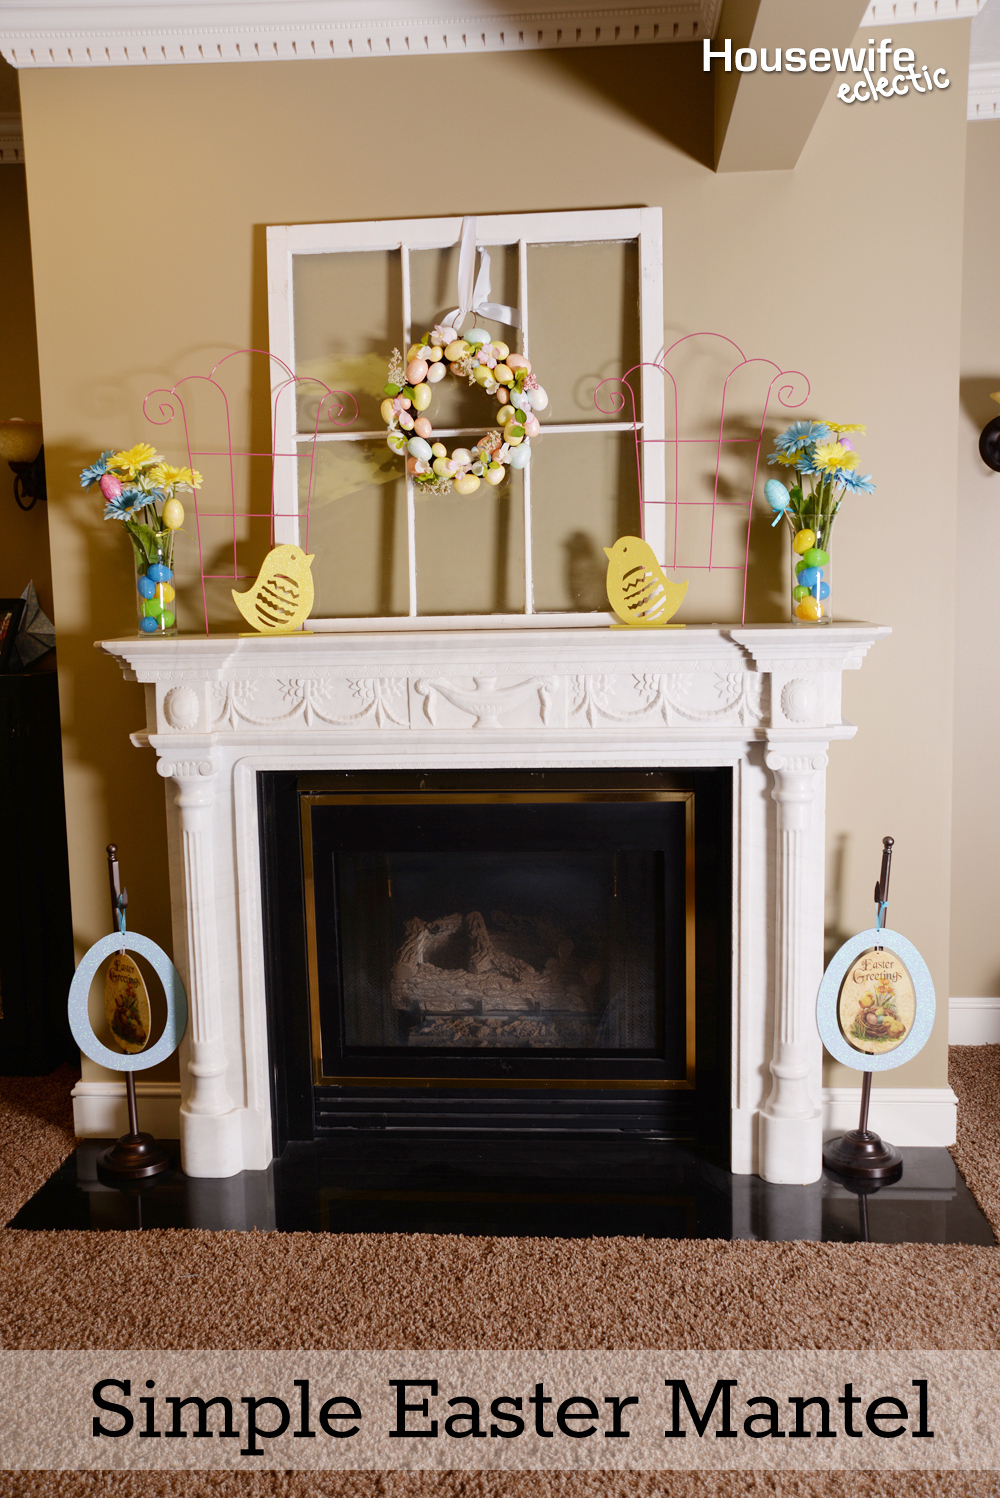 Simple Easter Mantel Housewife Eclectic